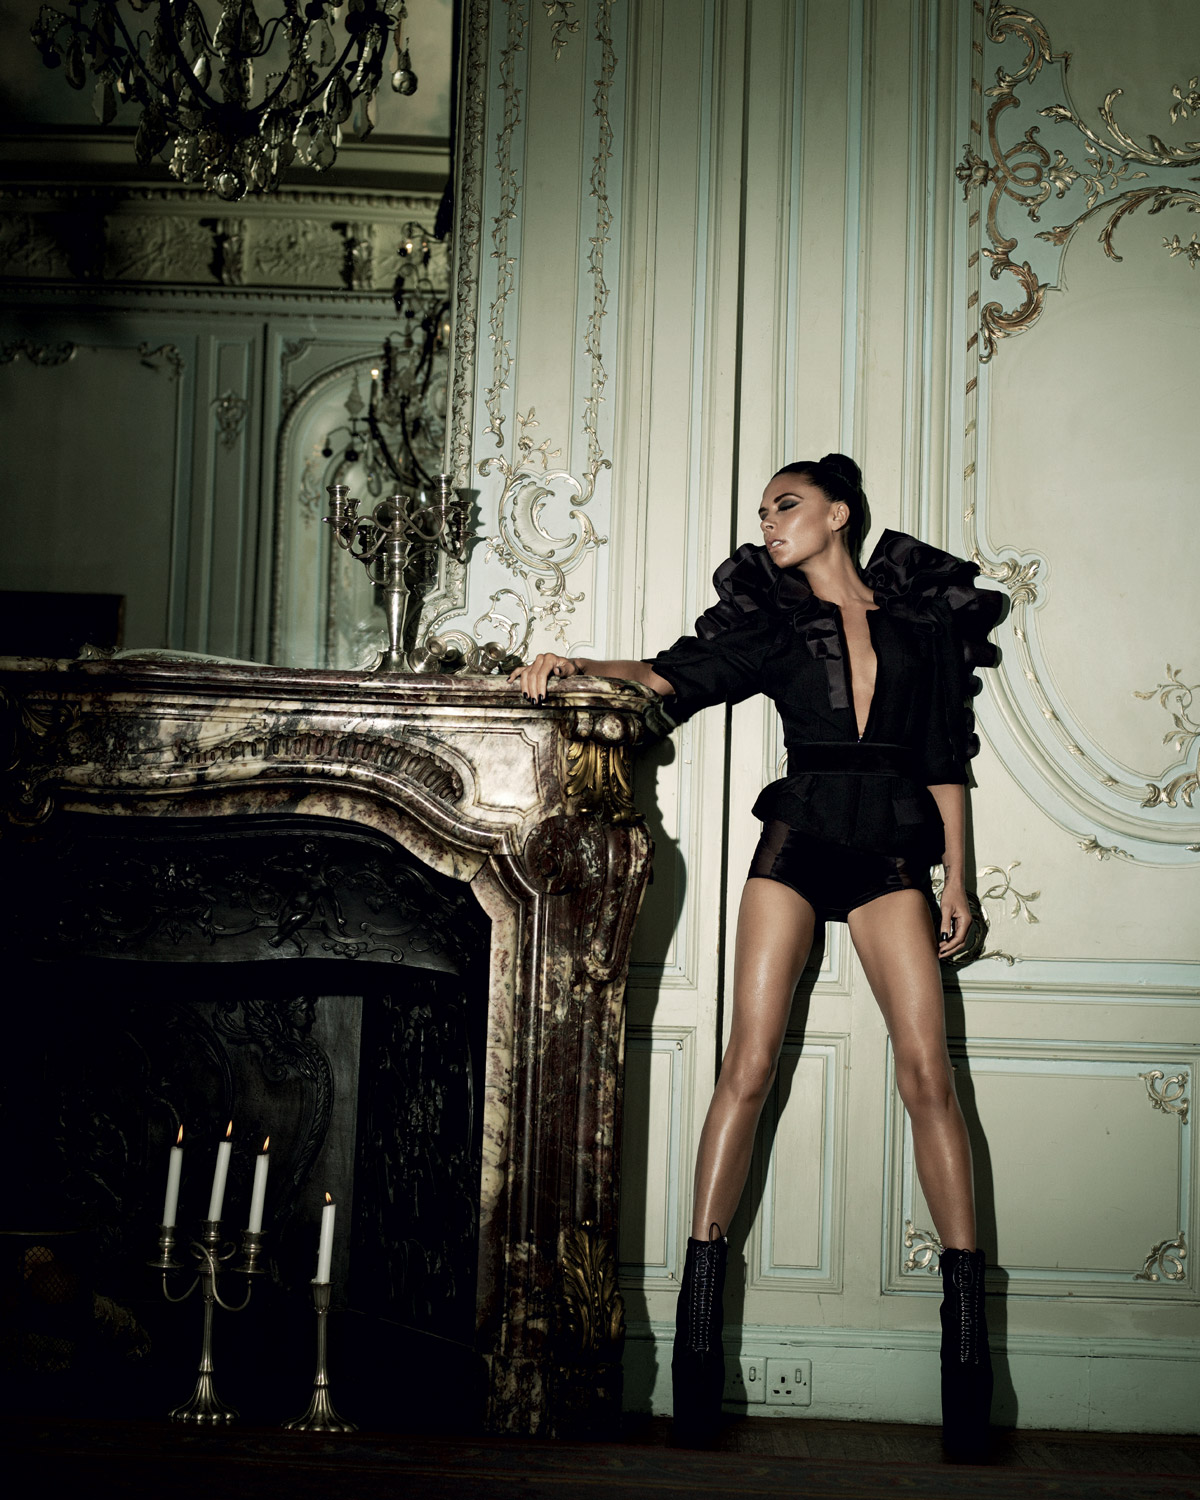 House of Usher Victoria Beckham by Alexi Lubomirski